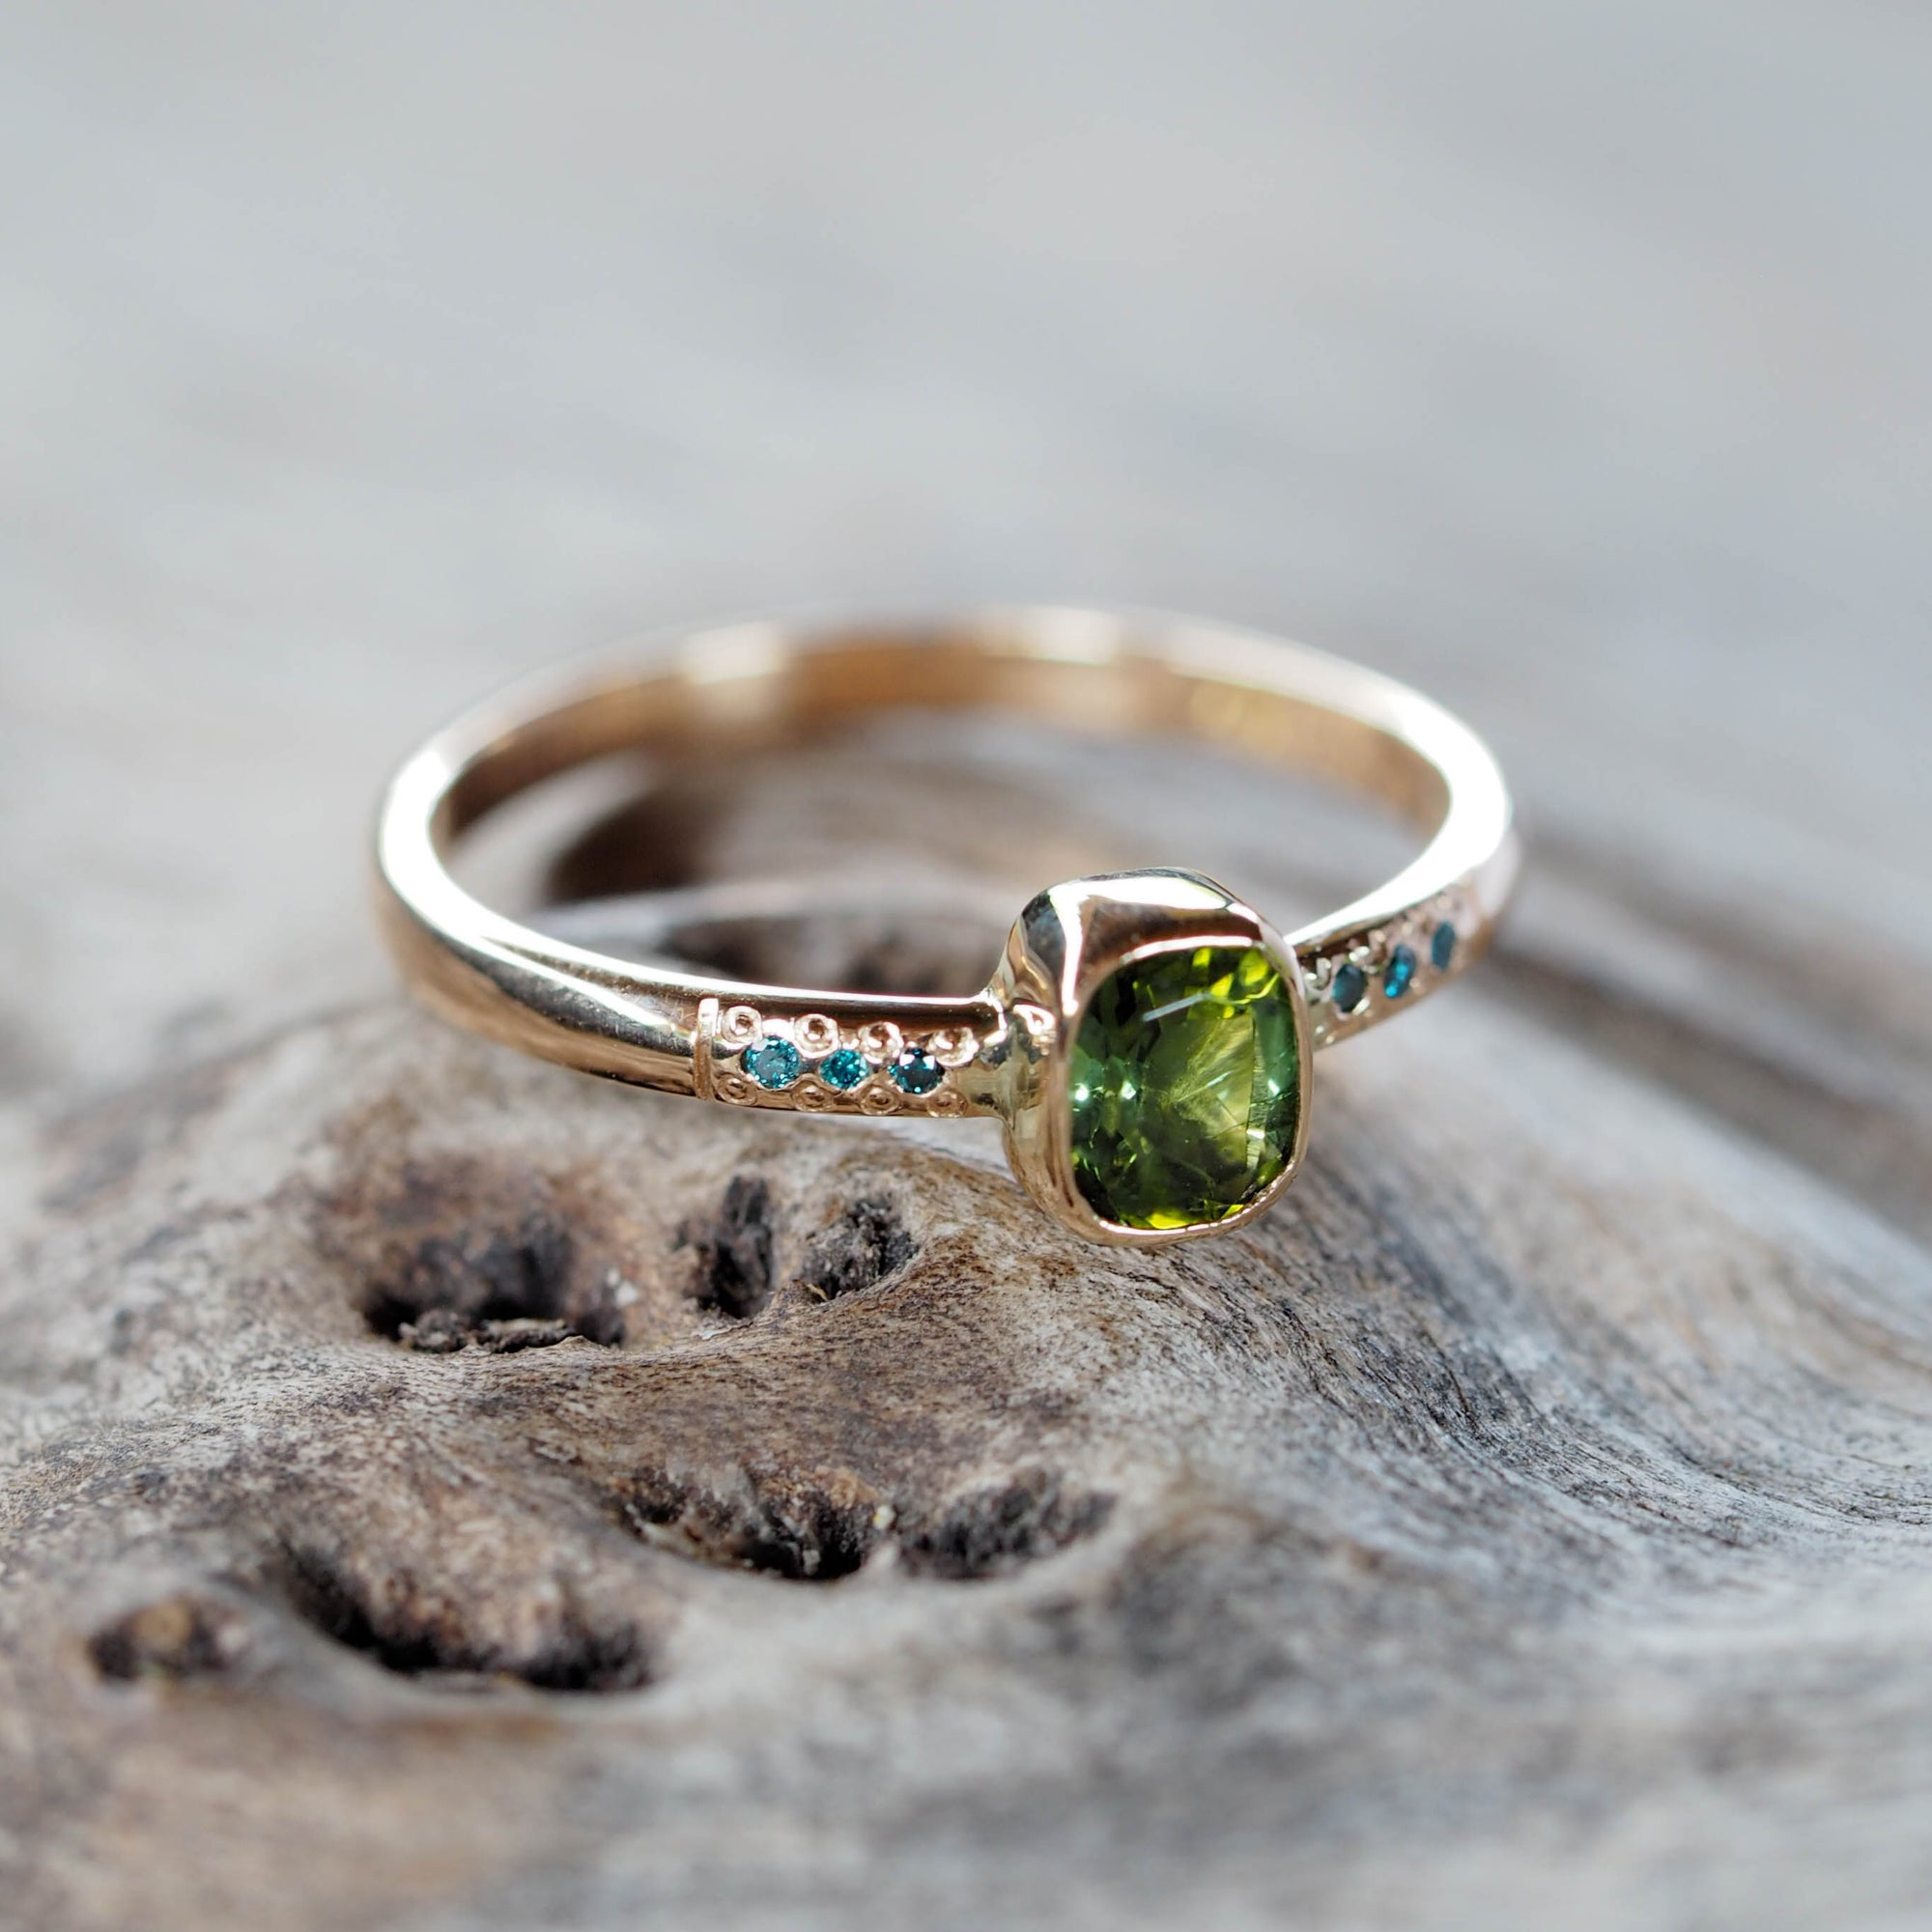 Green Tourmaline and Blue Diamond Ring